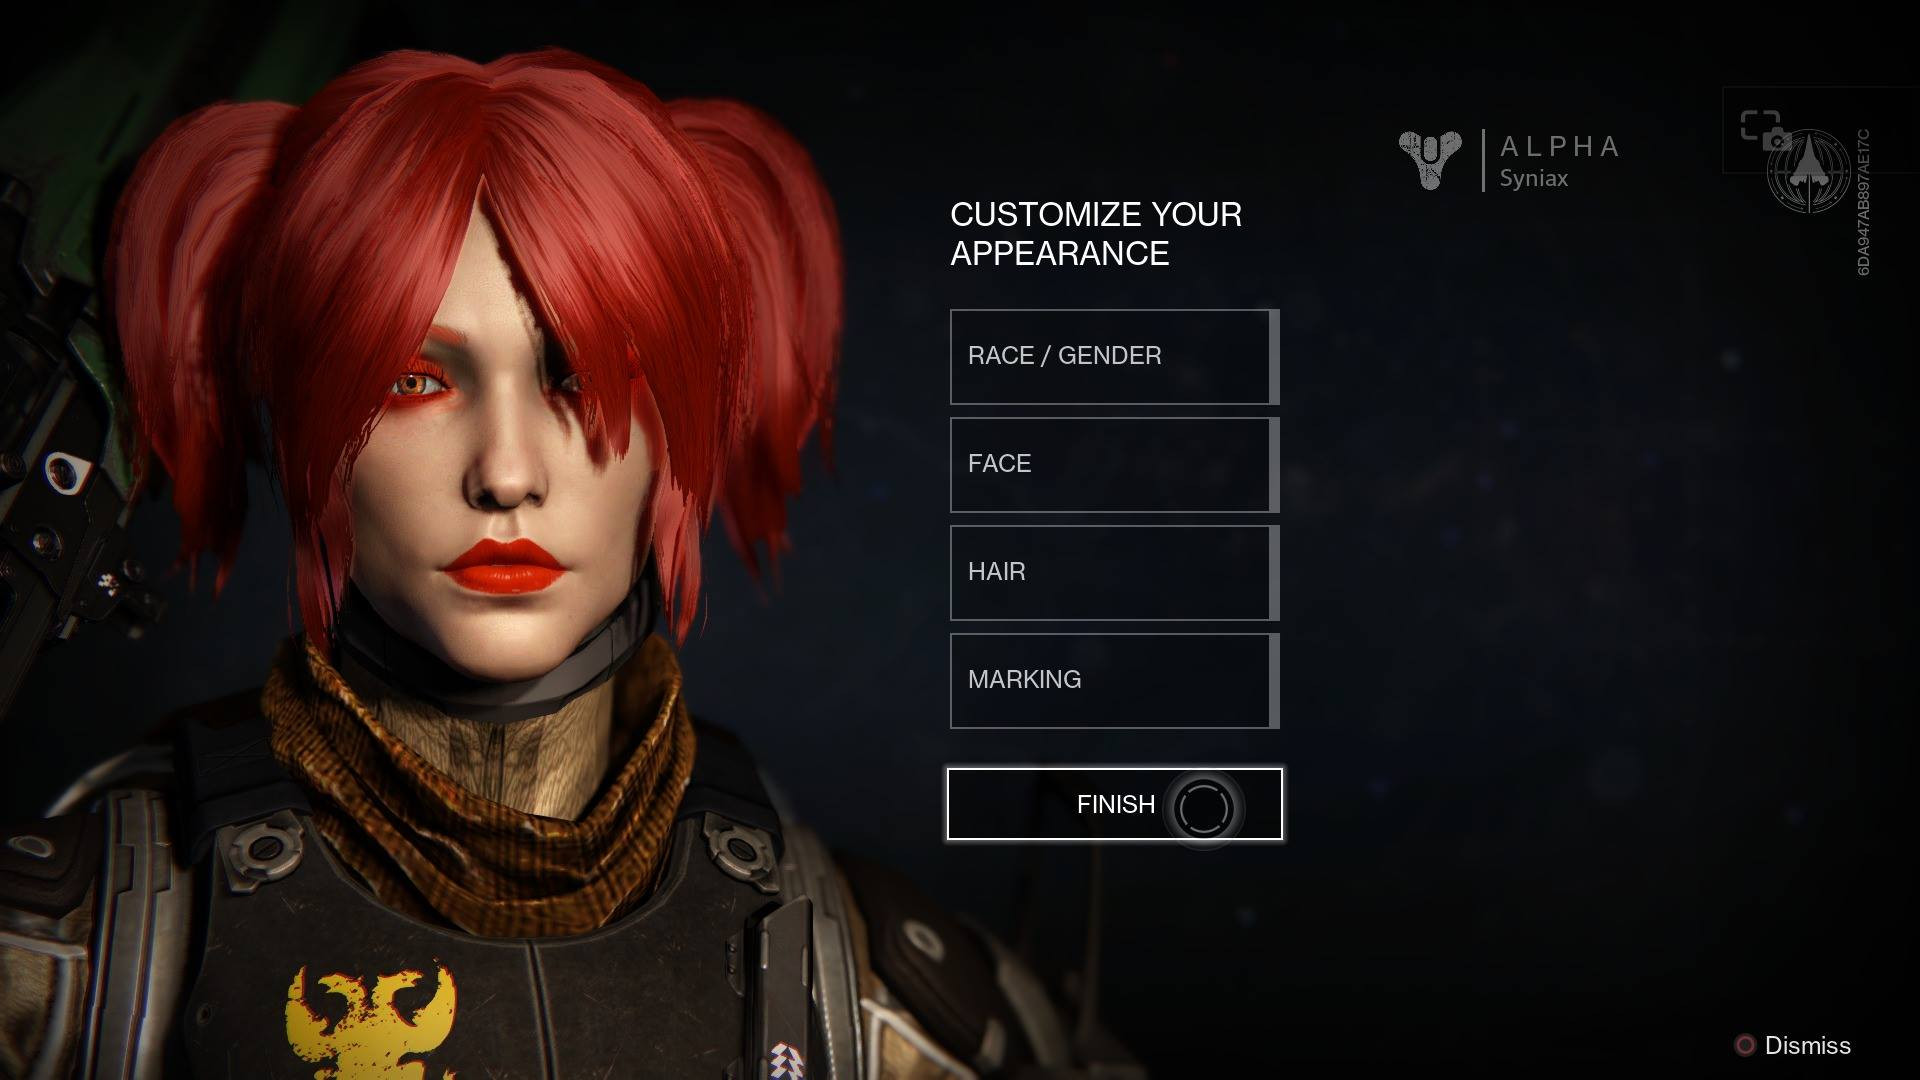 Destiny Human Female Hairstyles From Behind  Destiny Human Female Hairstyles